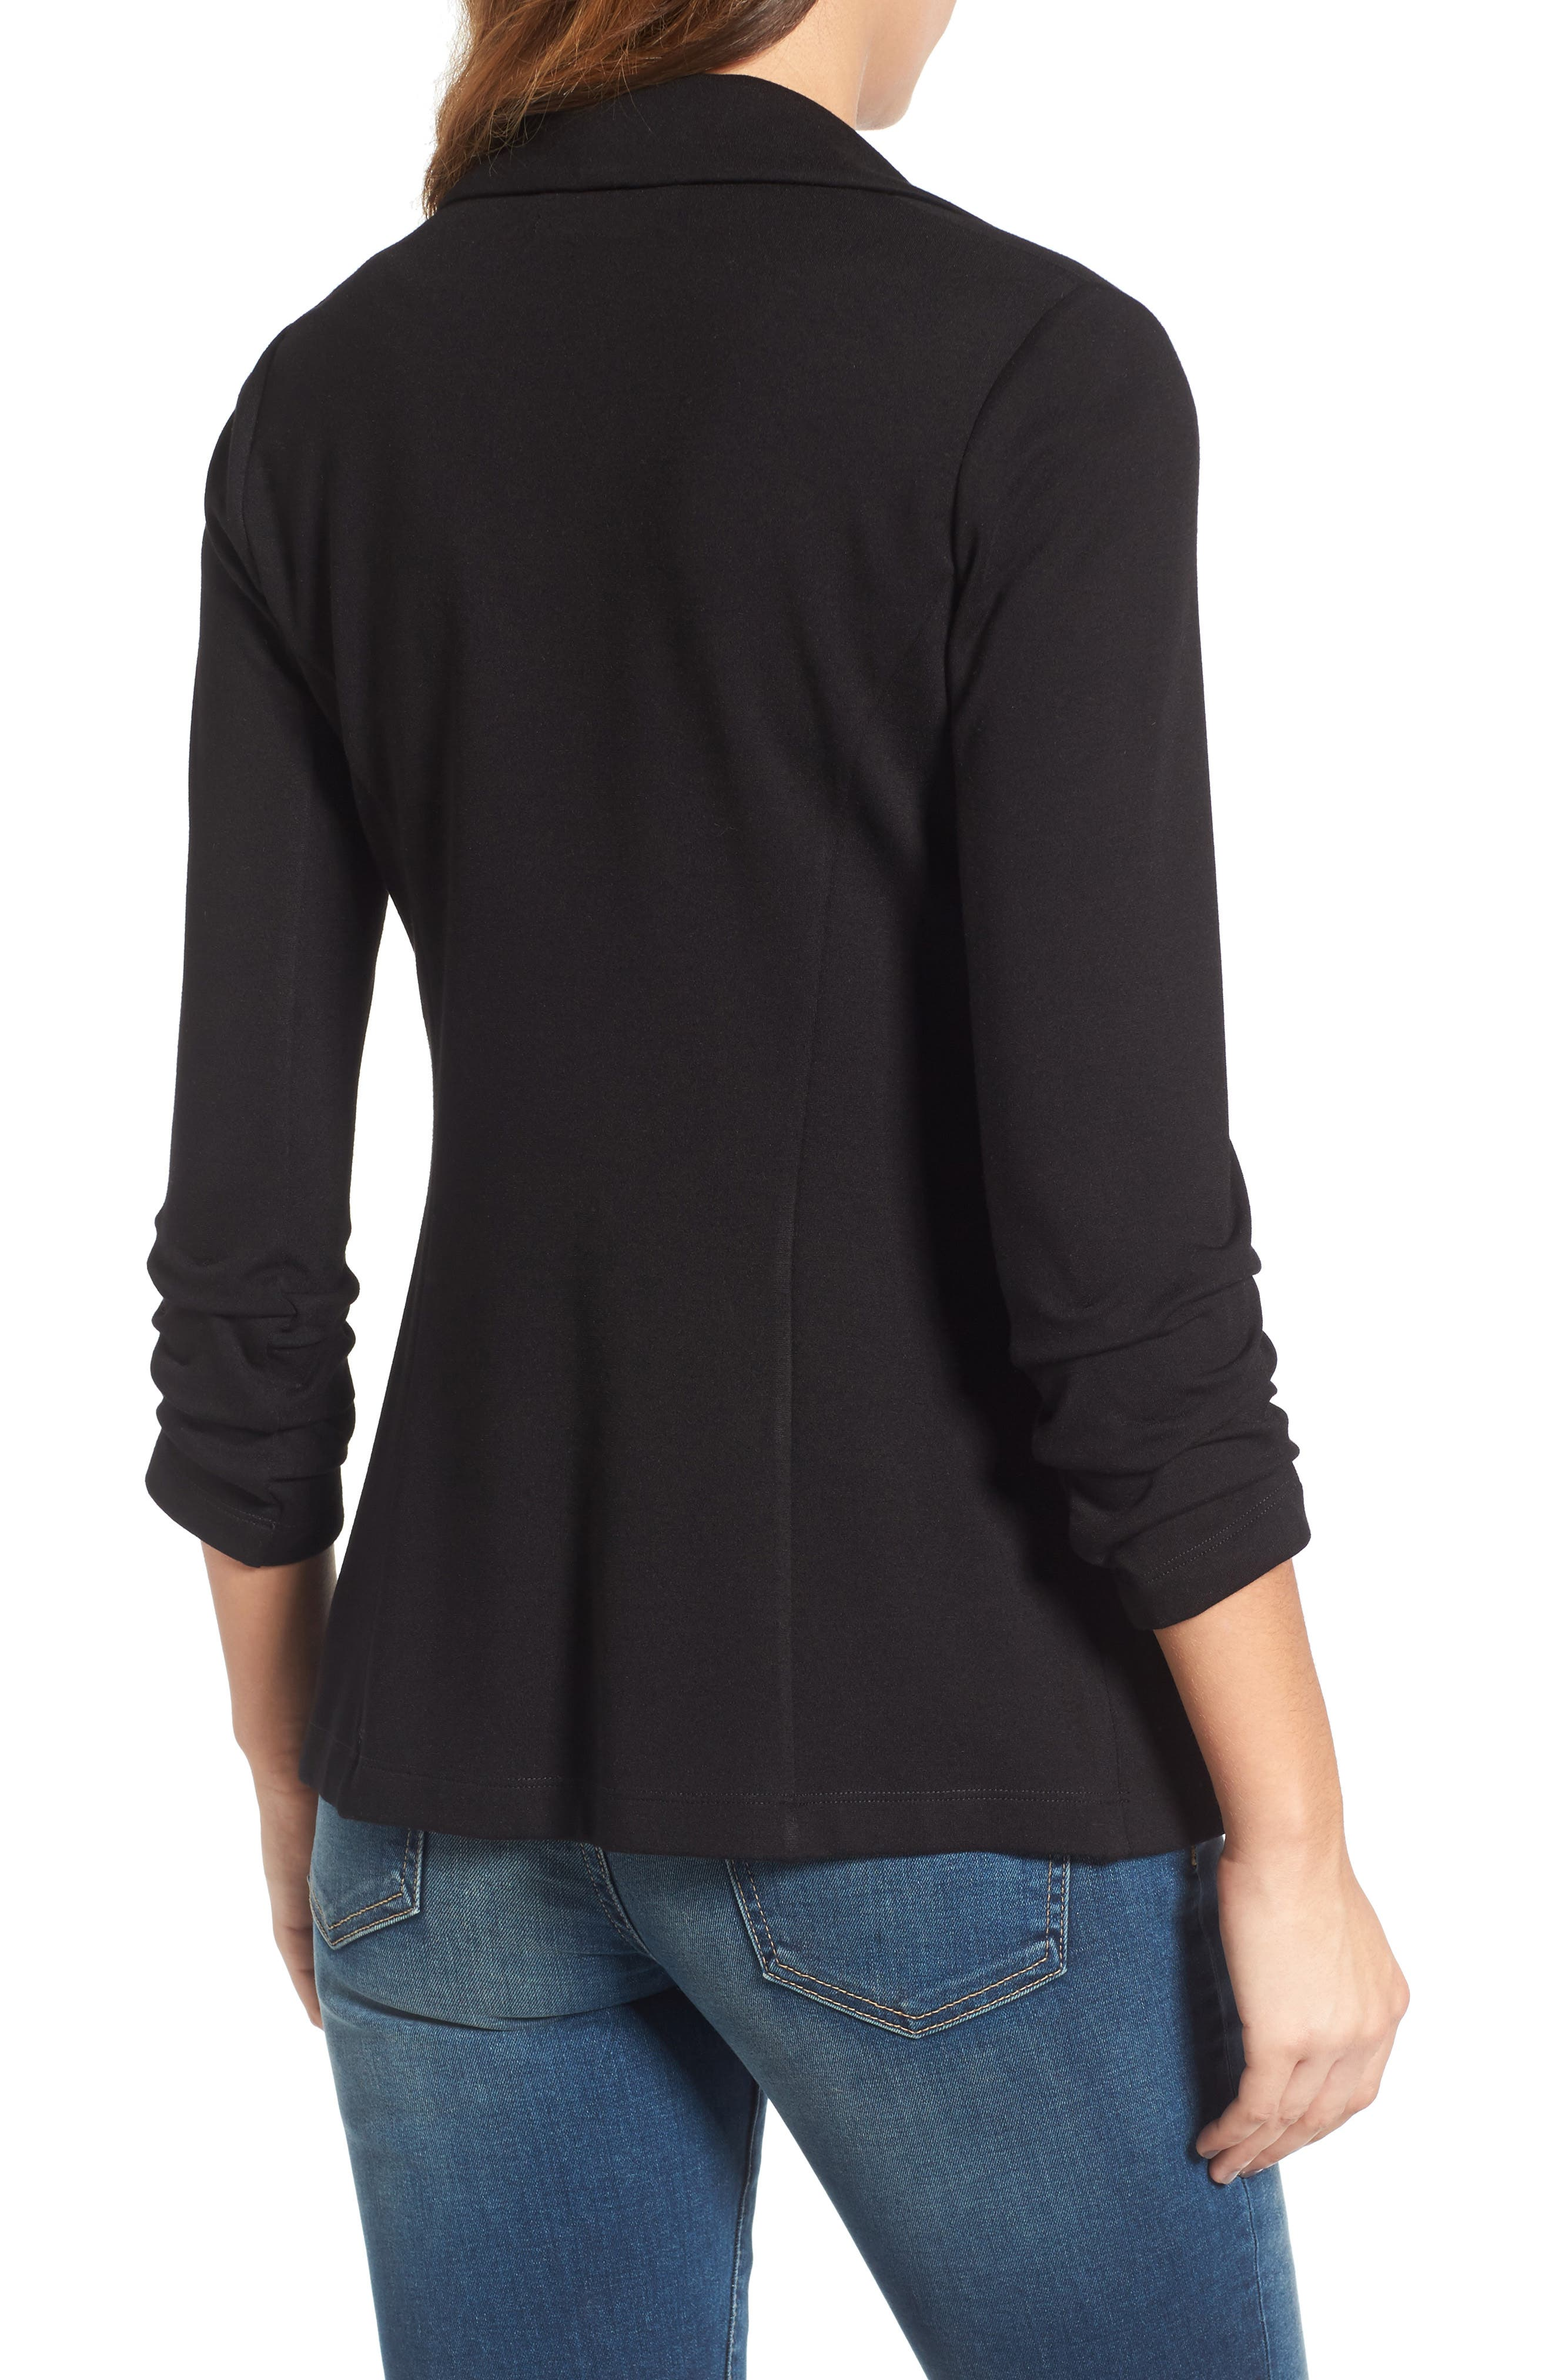 'Jane' Ruched Sleeve Knit Blazer,                             Alternate thumbnail 2, color,                             001